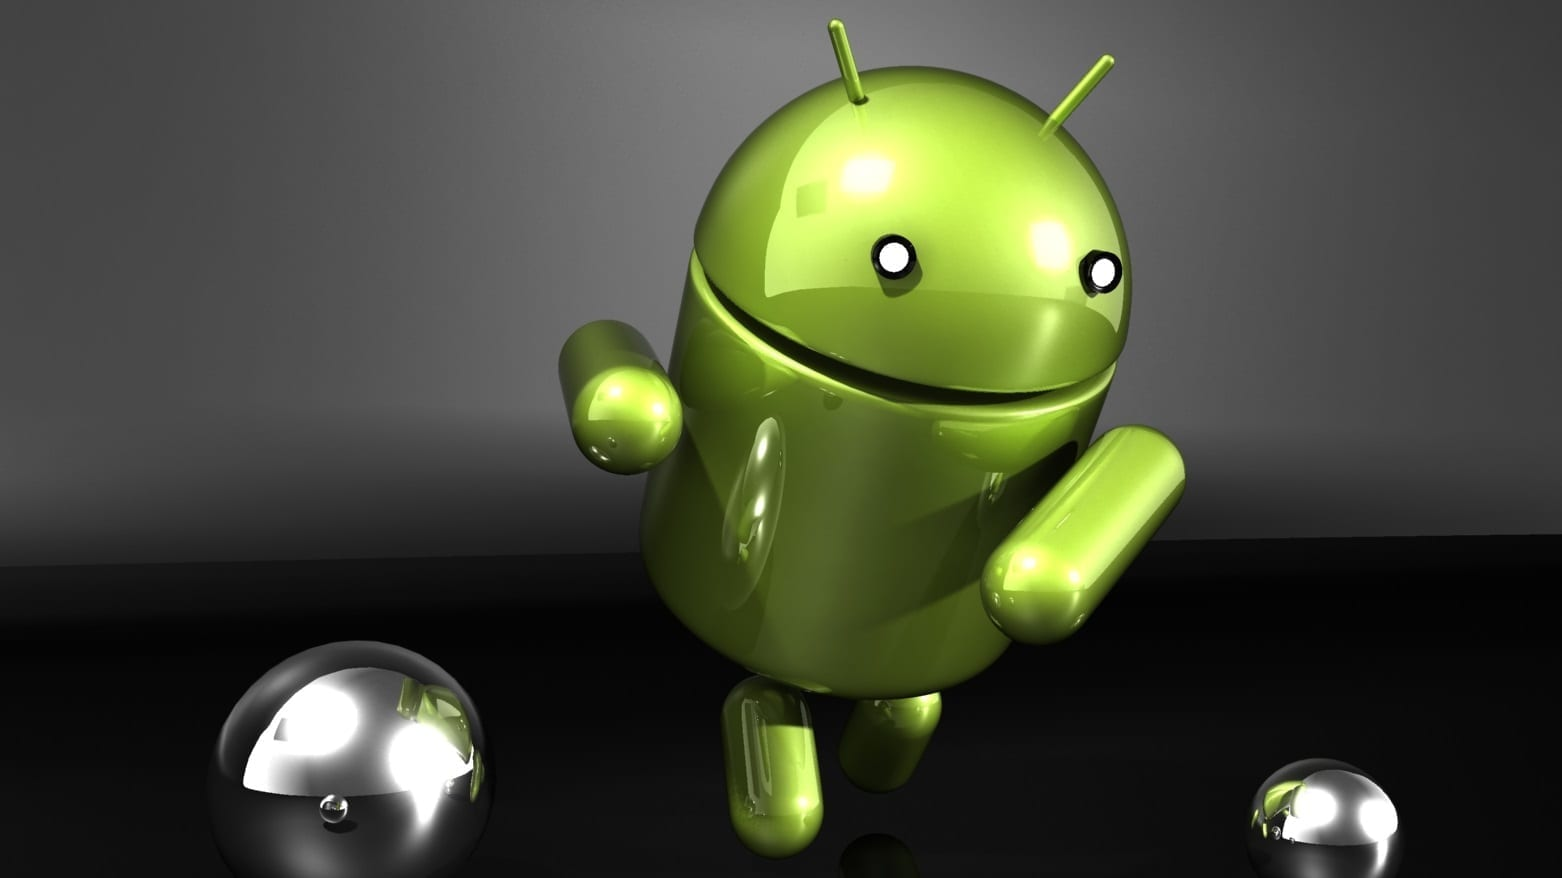 17 Cool Android Wallpapers For Free Download: Best Cell Phone Spy For Android